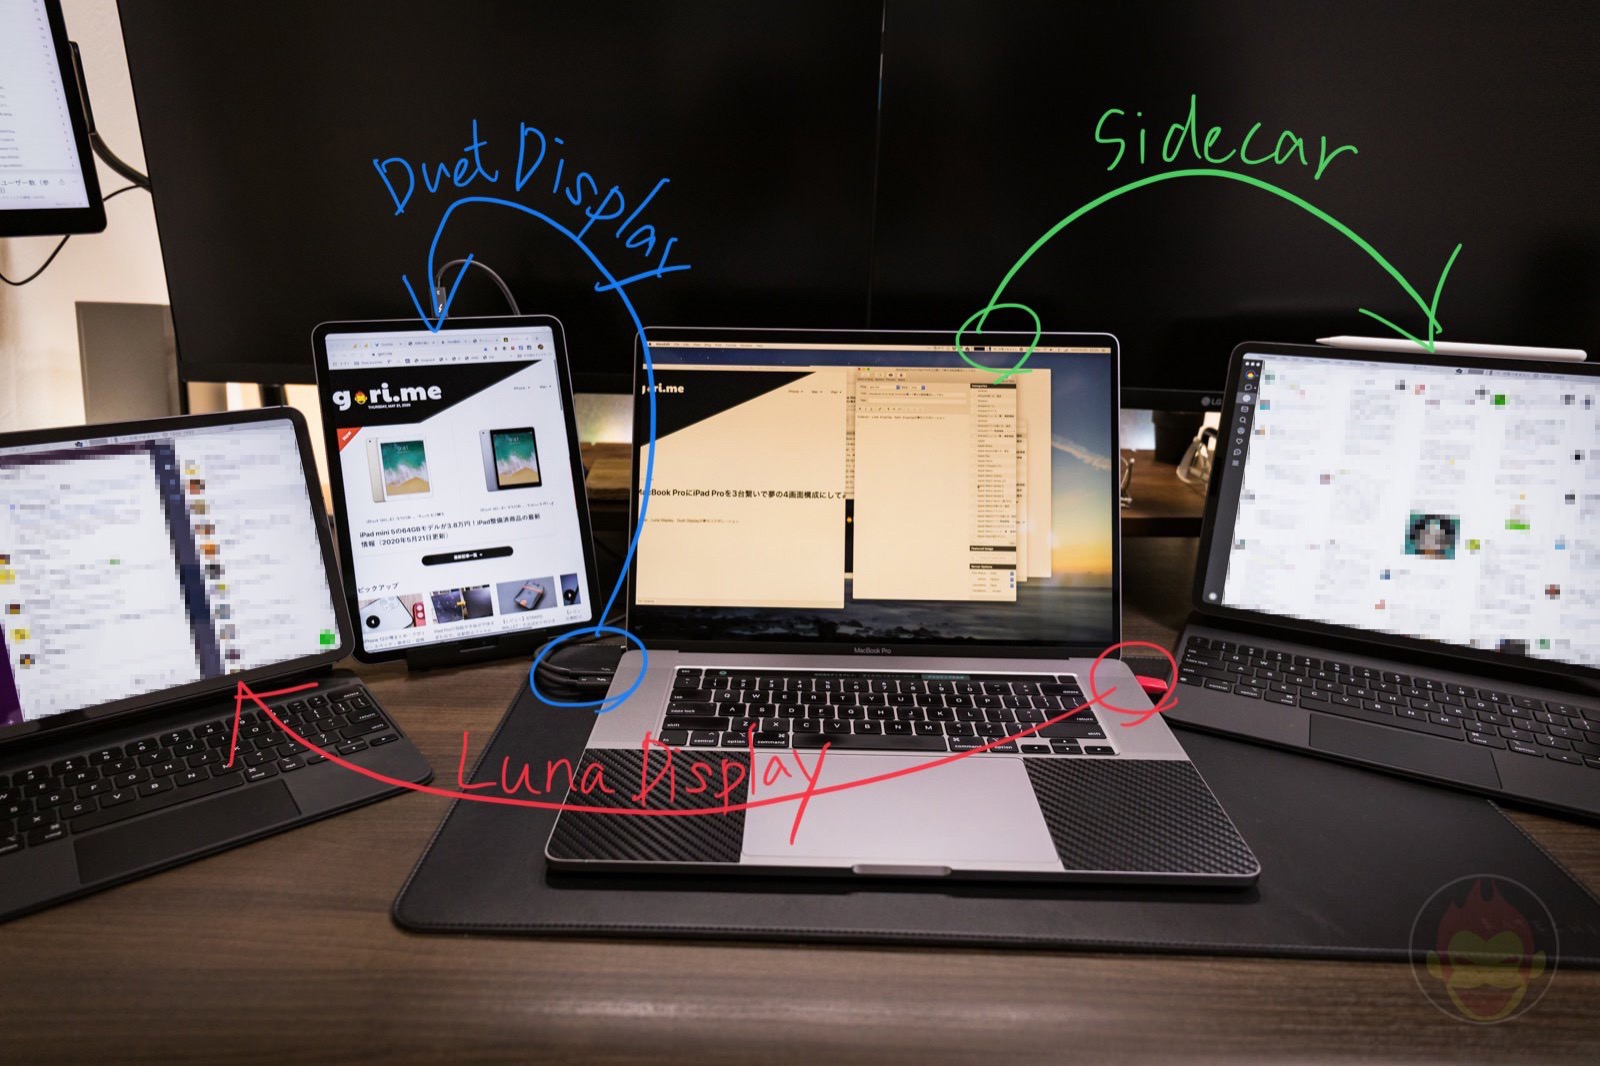 using-ipads-for-multidisplay-support-top.jpg